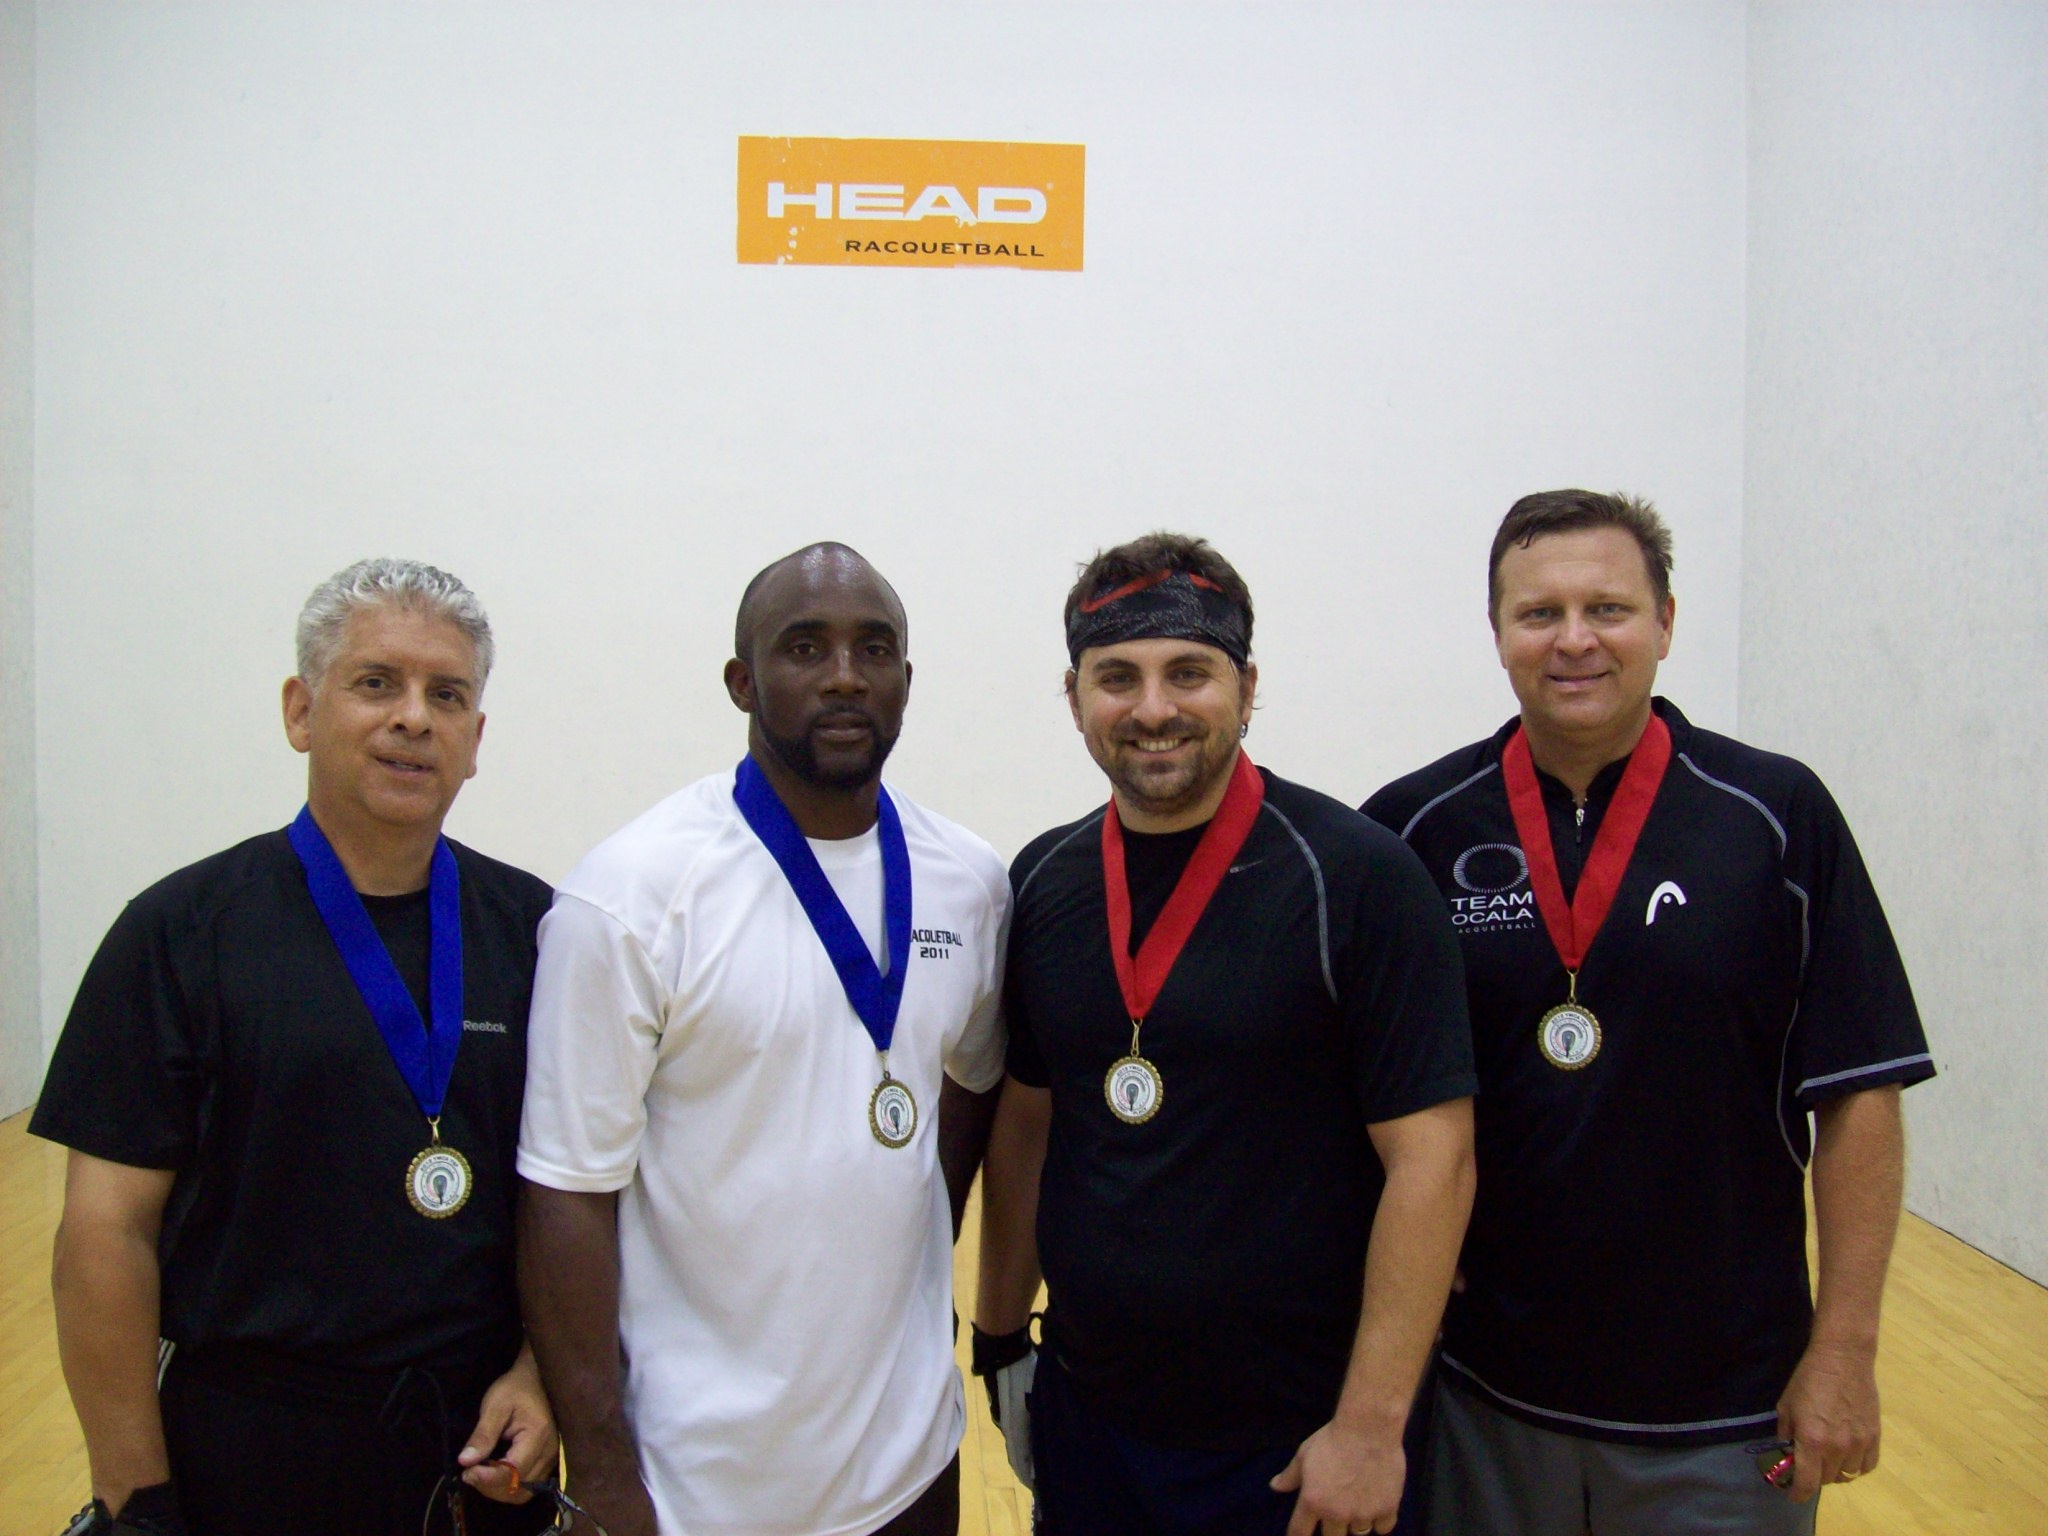 Results from the 2012 Youth Scholarship Tournament